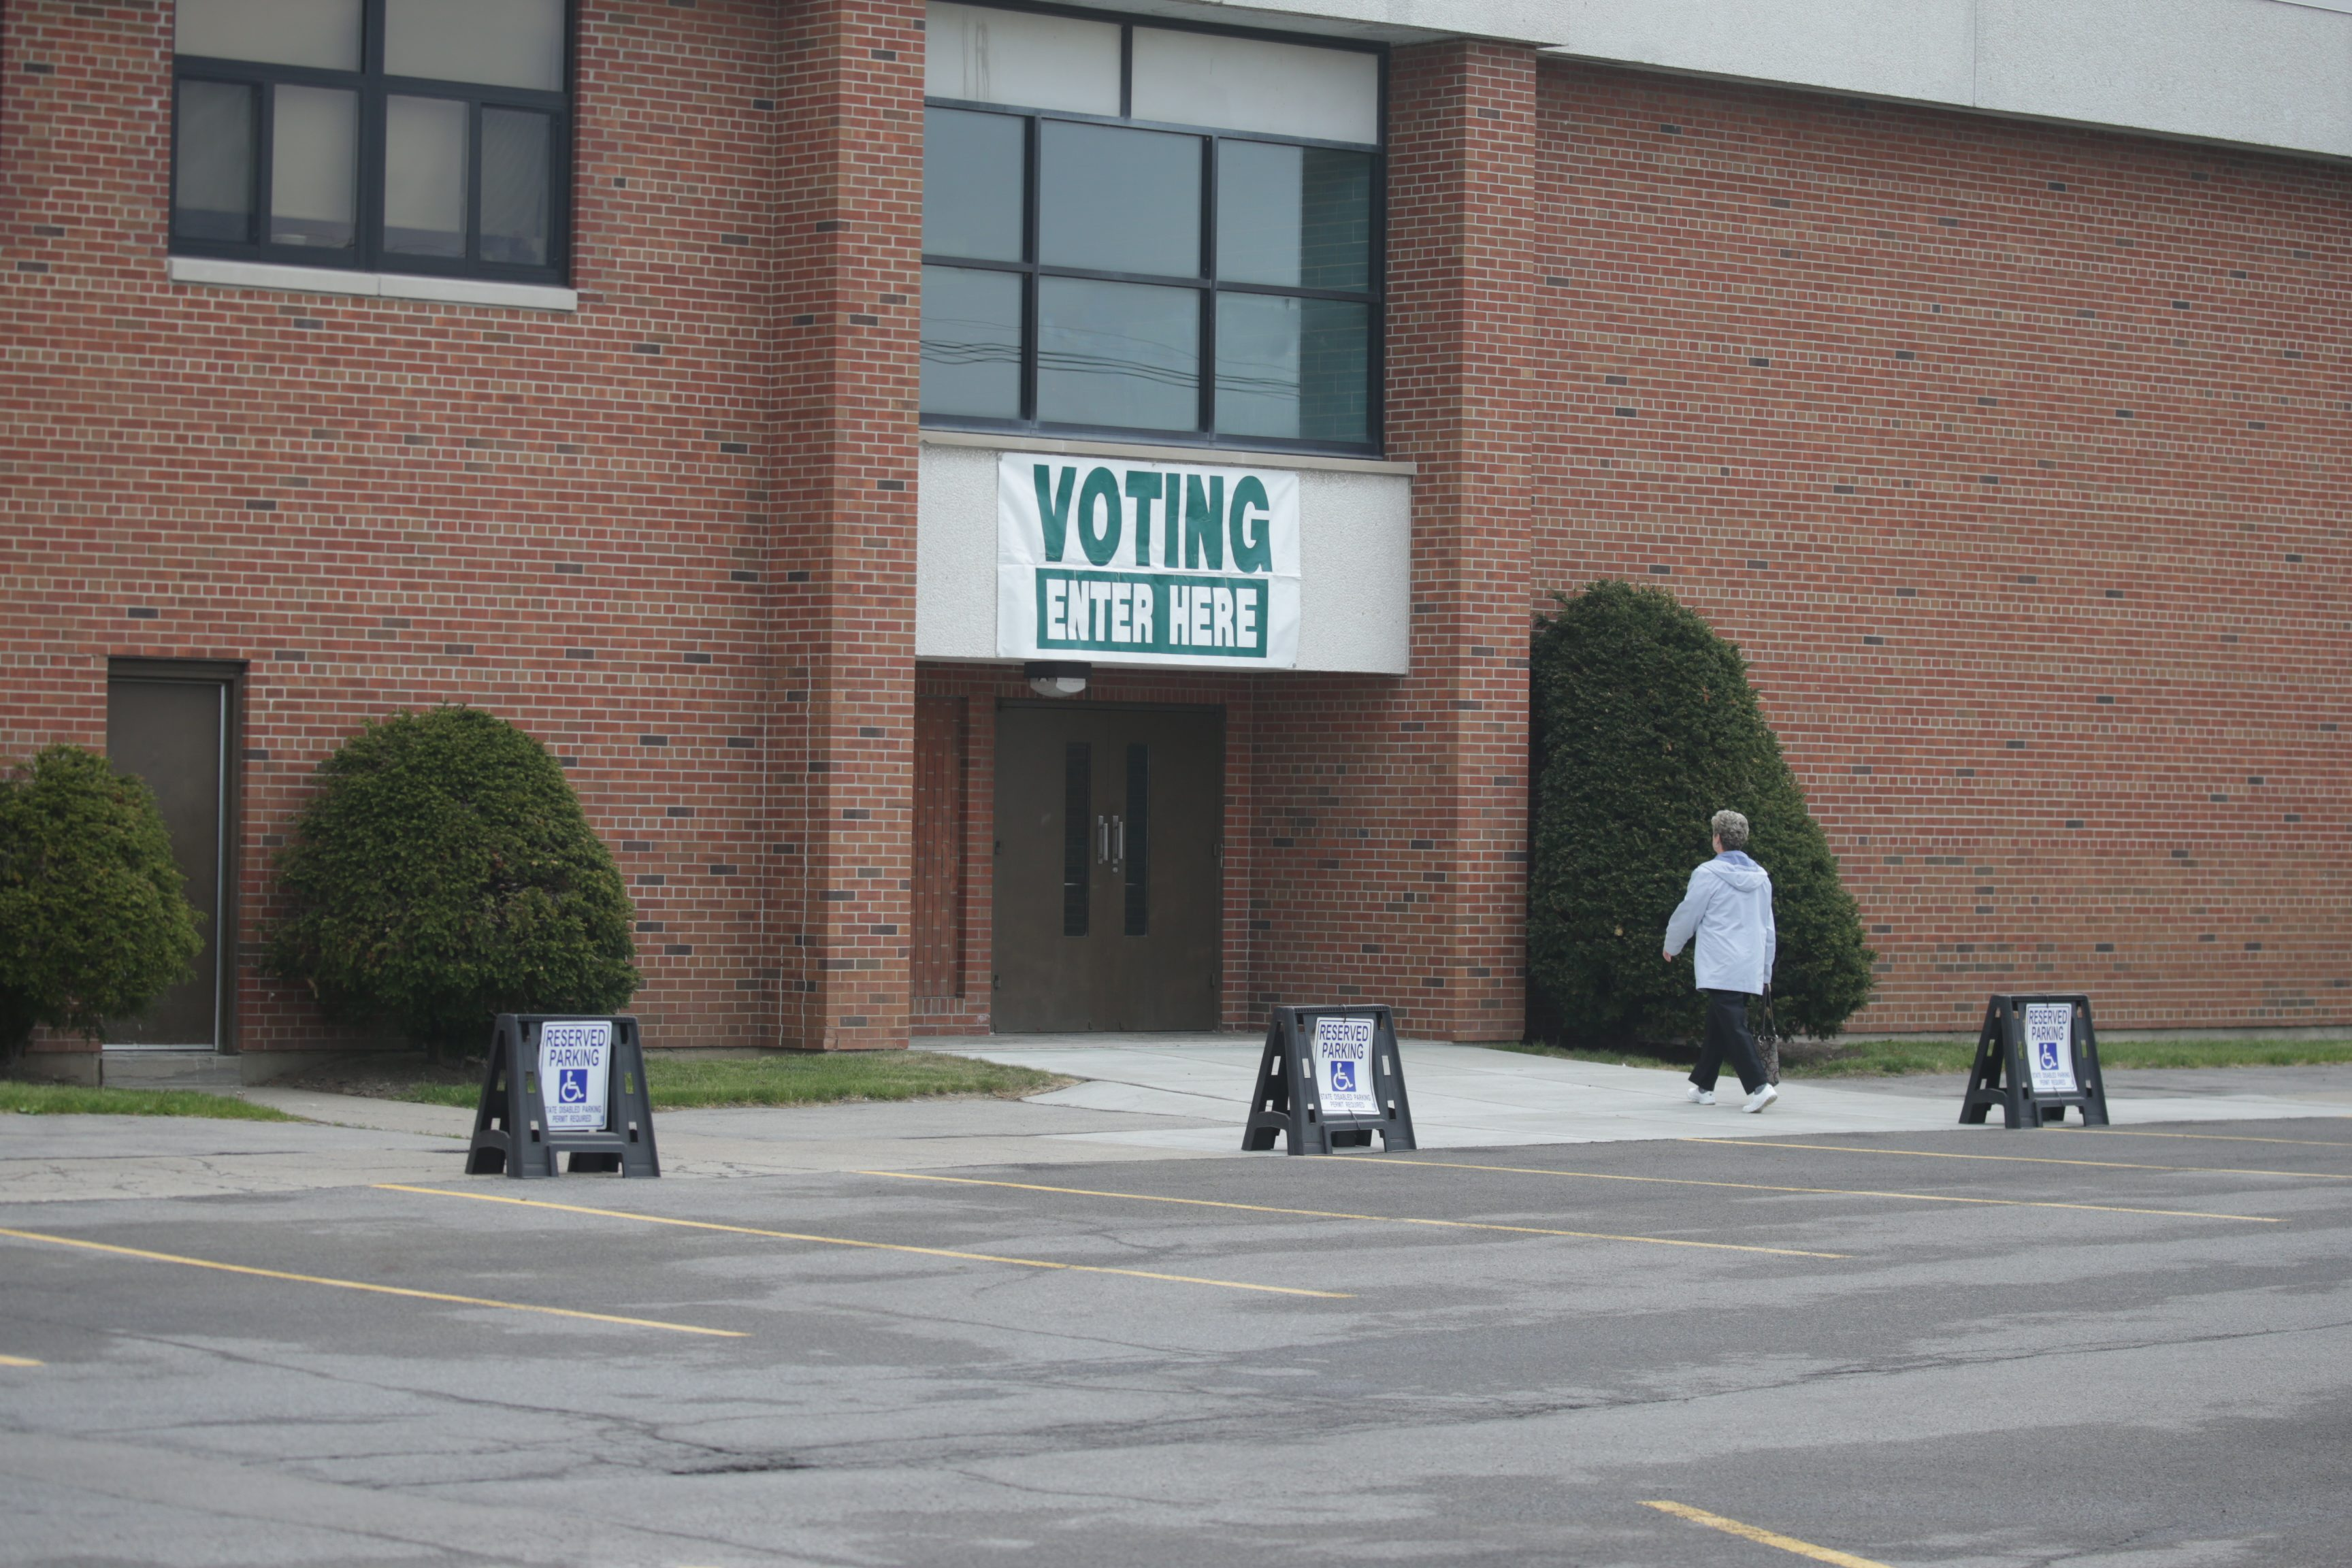 Voting on Election Day in the suburbs at Hoover Middle School, in Town of Tonawanda, N.Y., on Tuesday May 17, 2016.   (John Hickey/Buffalo News file photo)